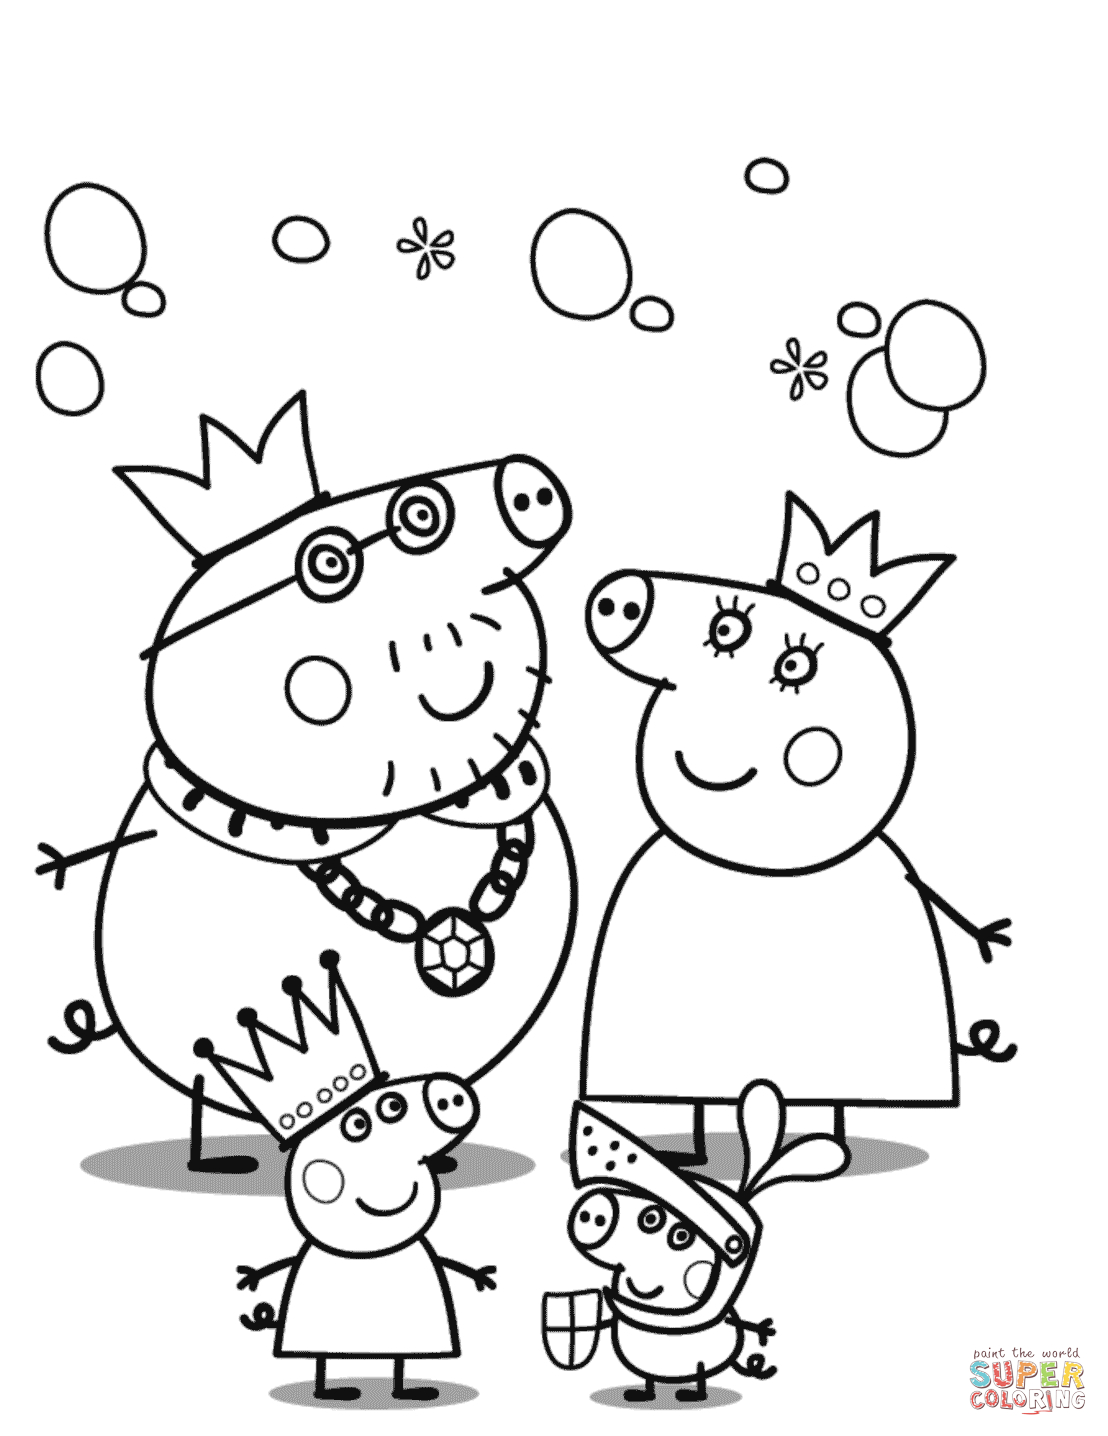 Peppa Pig Coloring Pages | Free Coloring Pages - Pig Coloring Sheets Free Printable